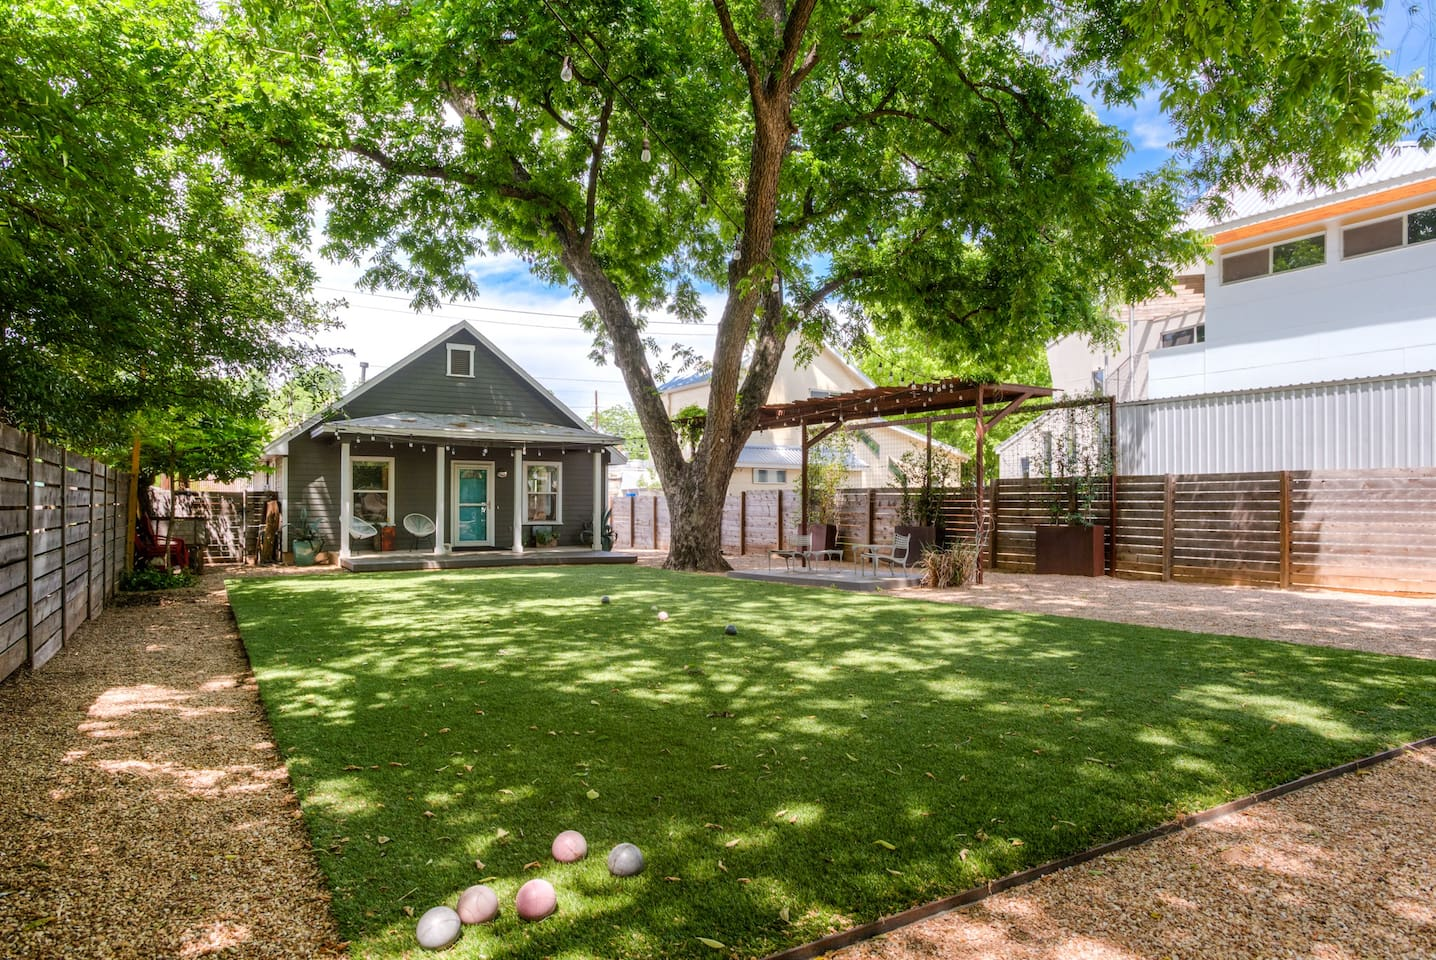 large front yard with steel framed turf, situated under a 100 yr old pecan tree that provides shade and cooler temps. Play bocce ball or simply lounge in the enormous front yard. Tons of parking on premises and on the street. Access via streetside or alley.